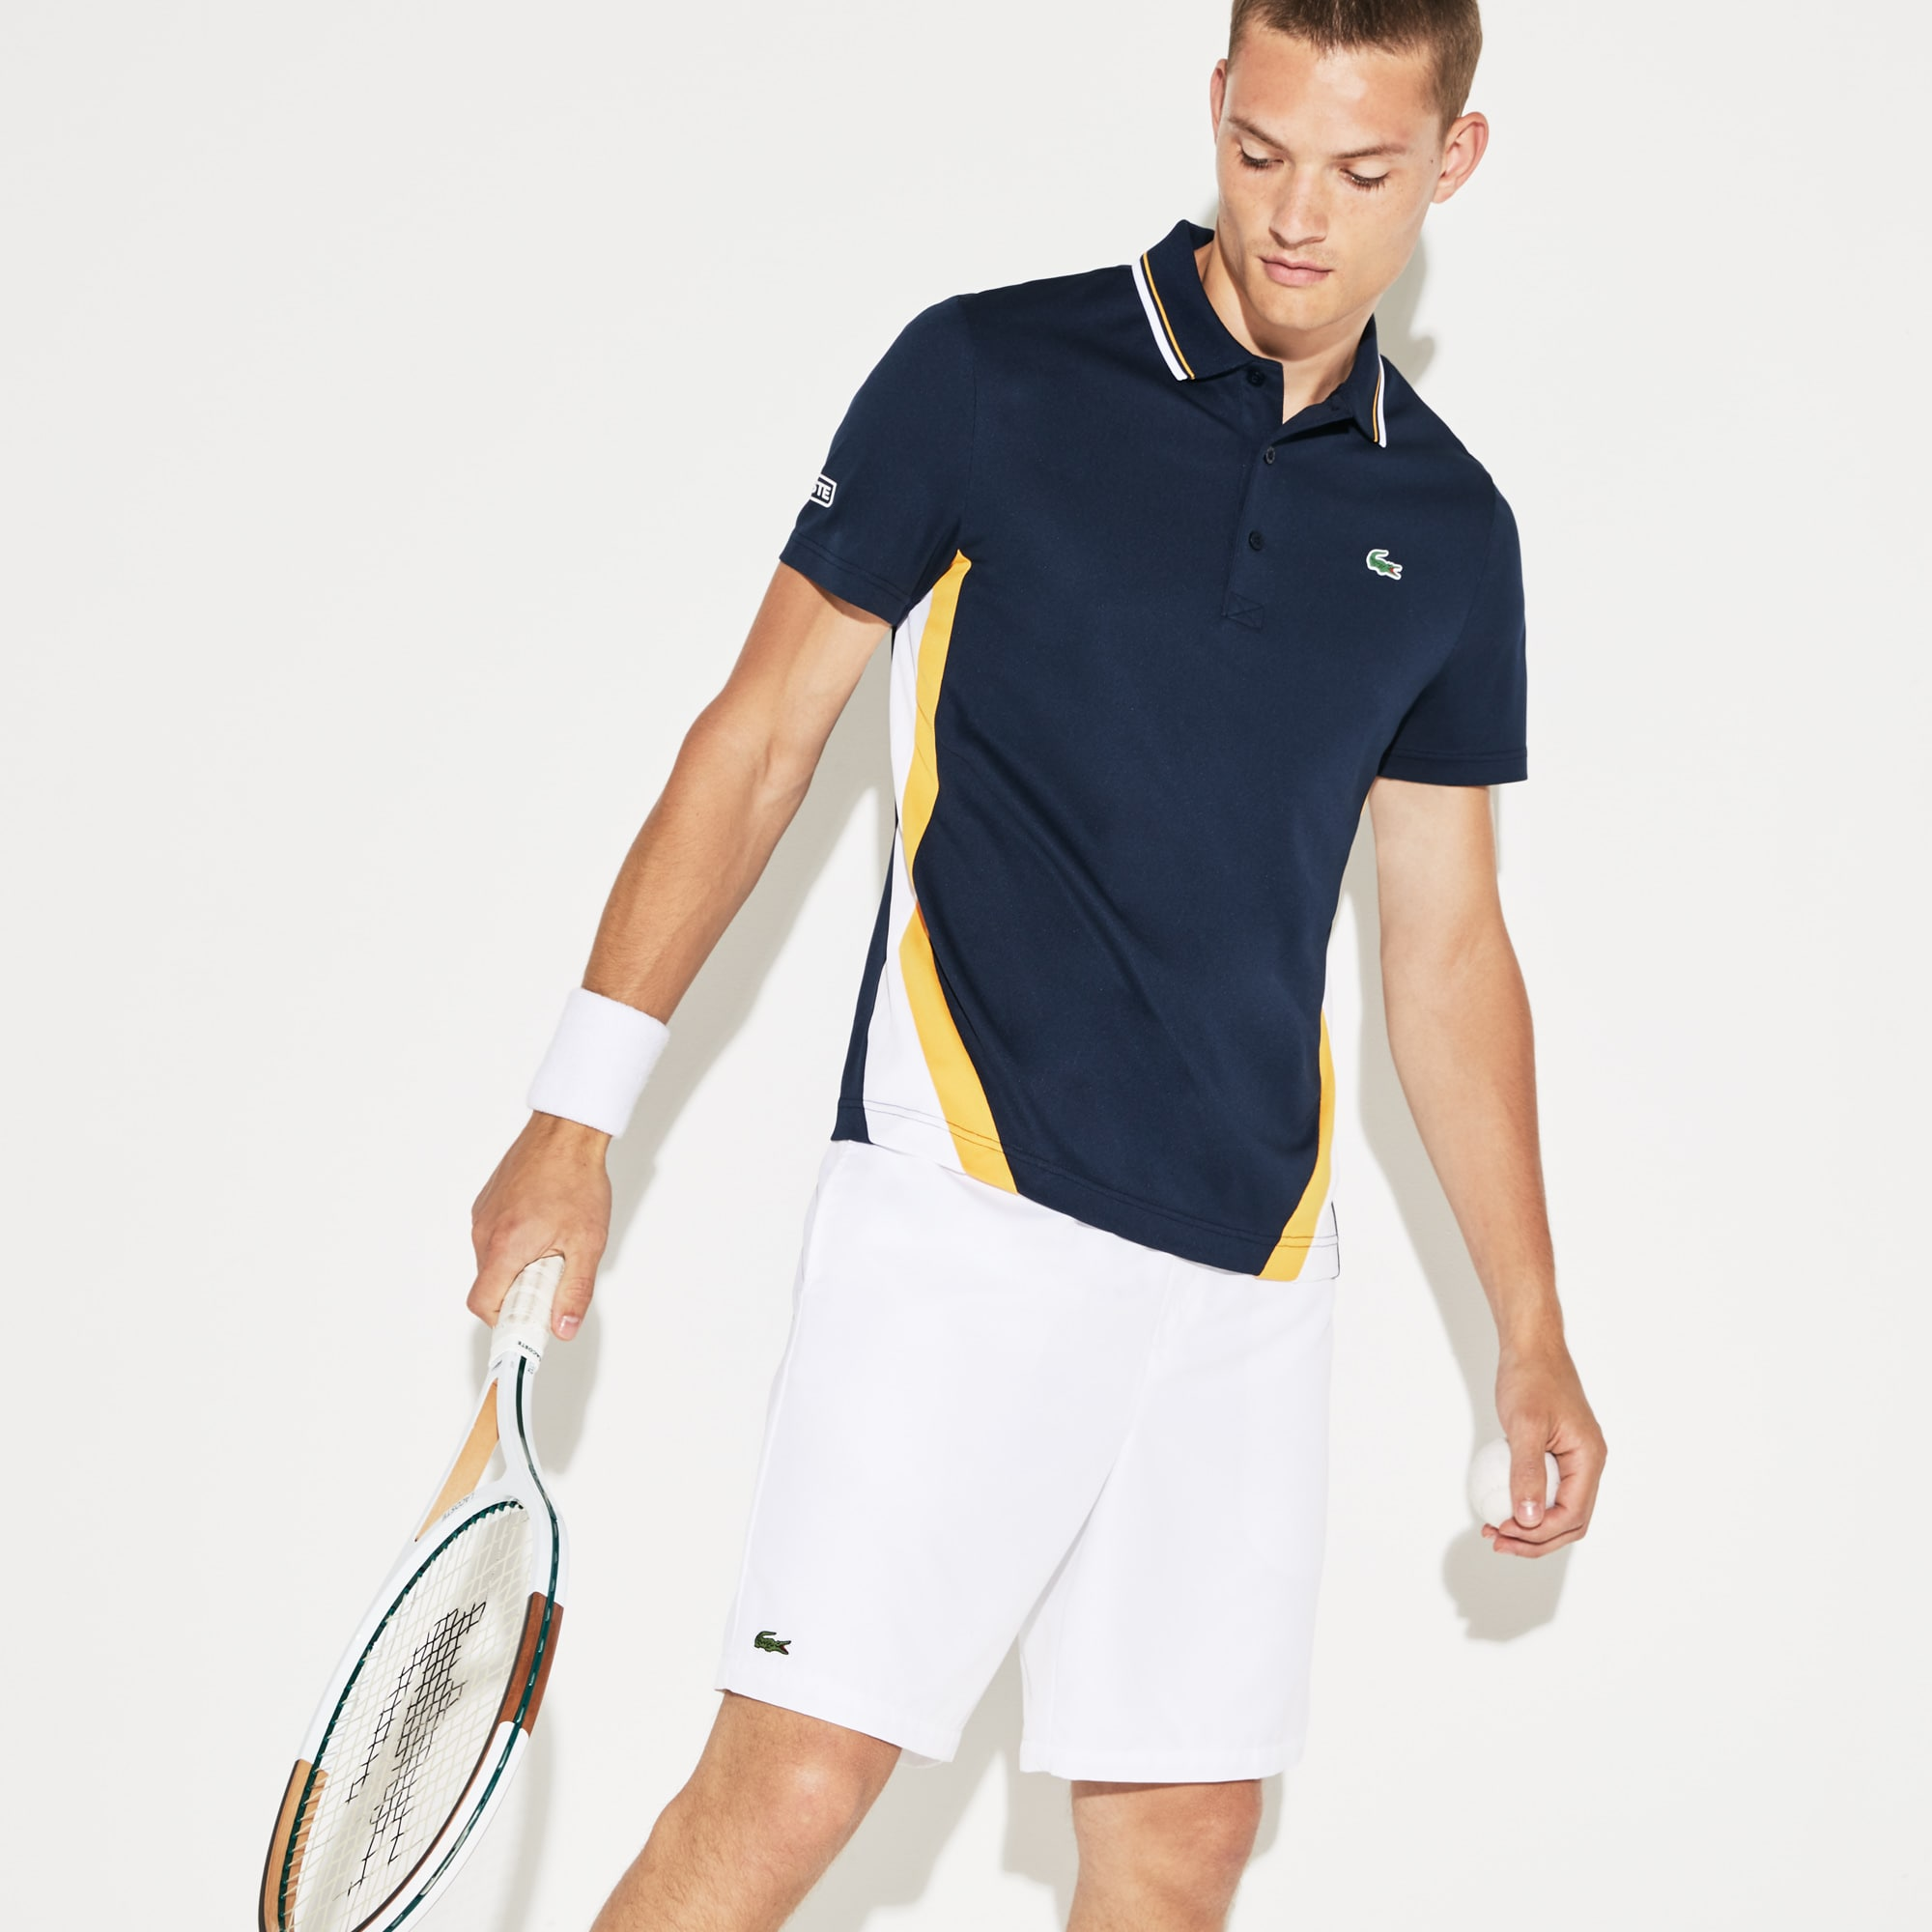 Polo Tennis Lacoste SPORT en piqué technique à bandes color block